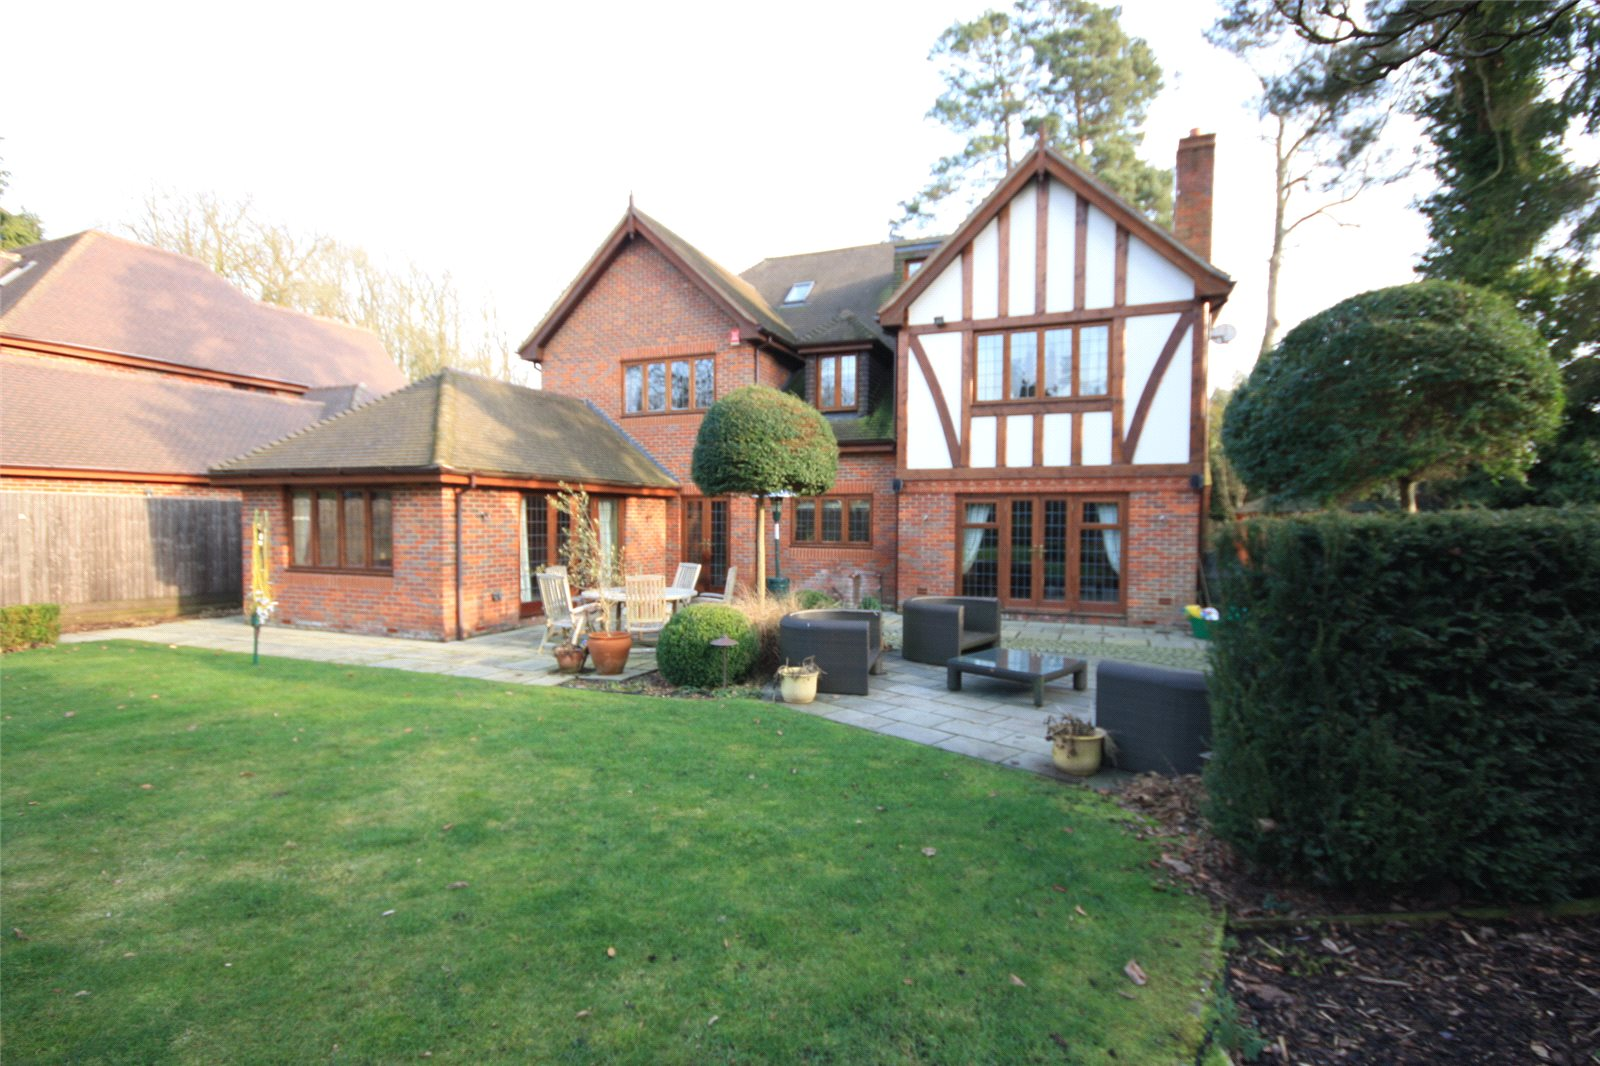 Additional photo for property listing at Deadhearn Lane, Chalfont St Giles, Buckinghamshire, HP8 Chalfont St Giles, Anh Quốc